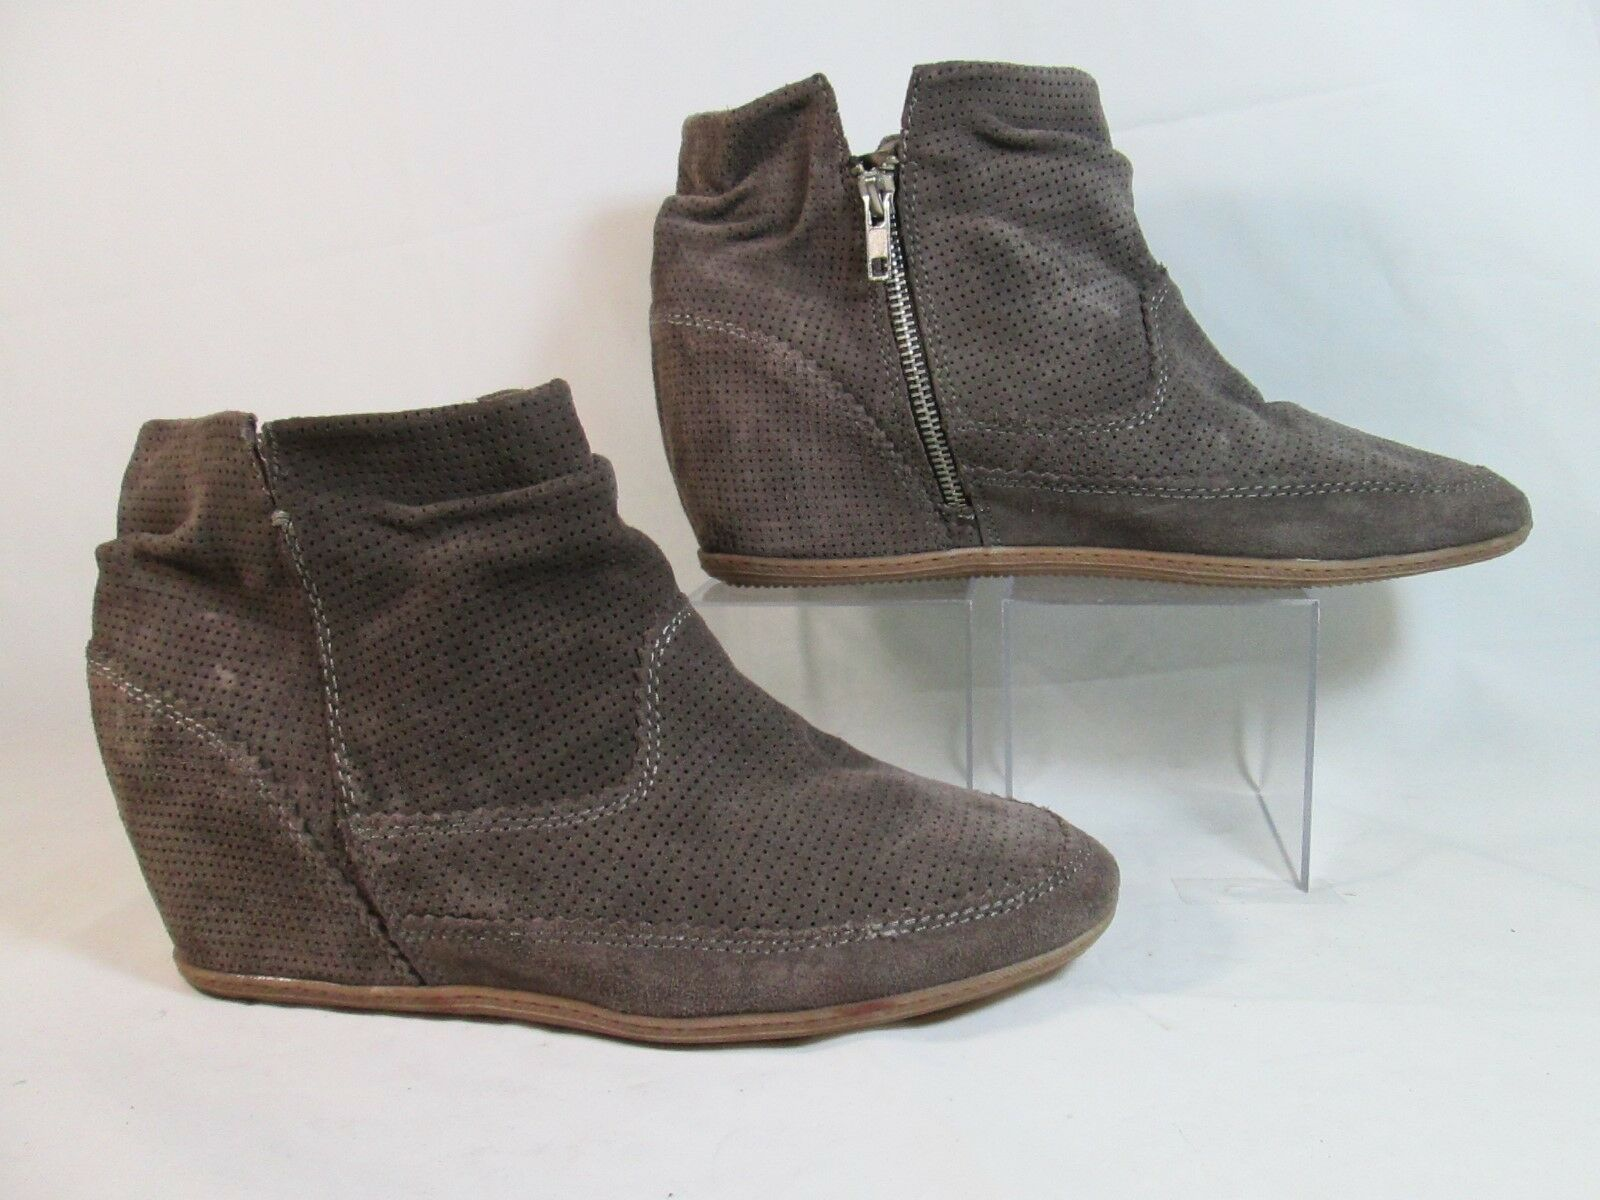 DV by Dolce Vita KEEBLY Perforated Leather Hidden Wedge Slouch Bootie Gray Sz11M